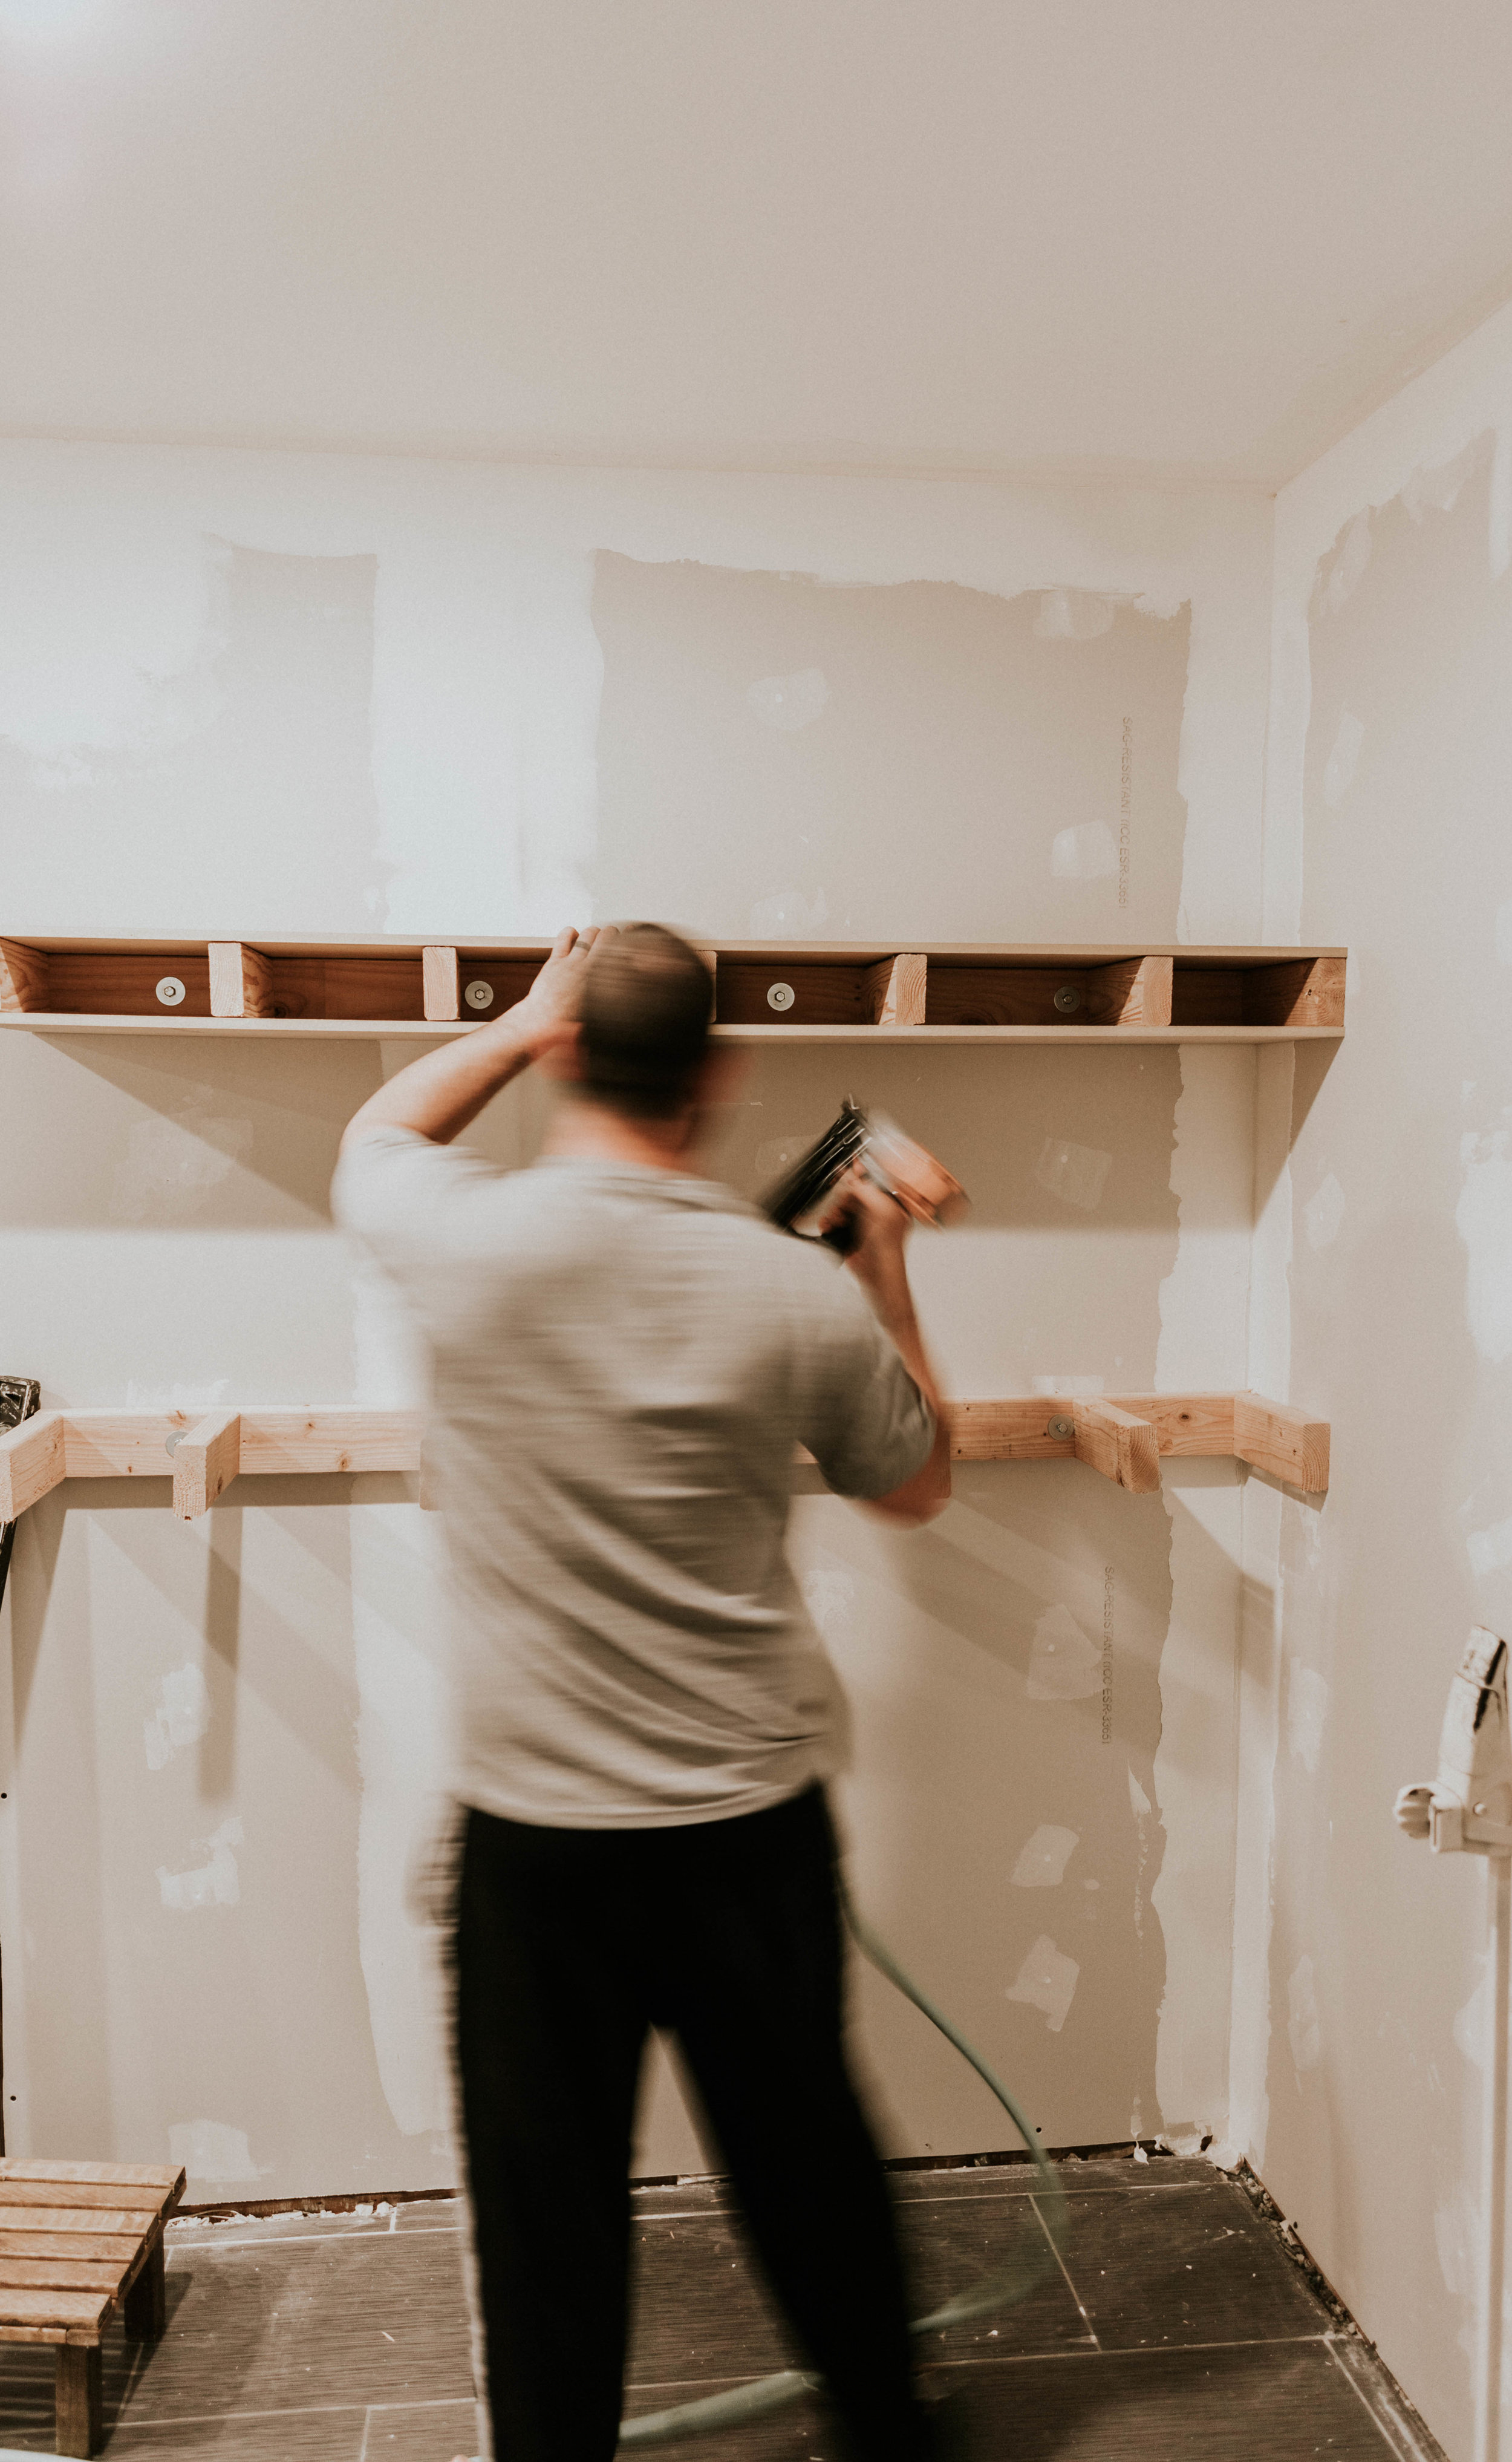 Build open shelving for your kitchen using 2/4's and mdf!